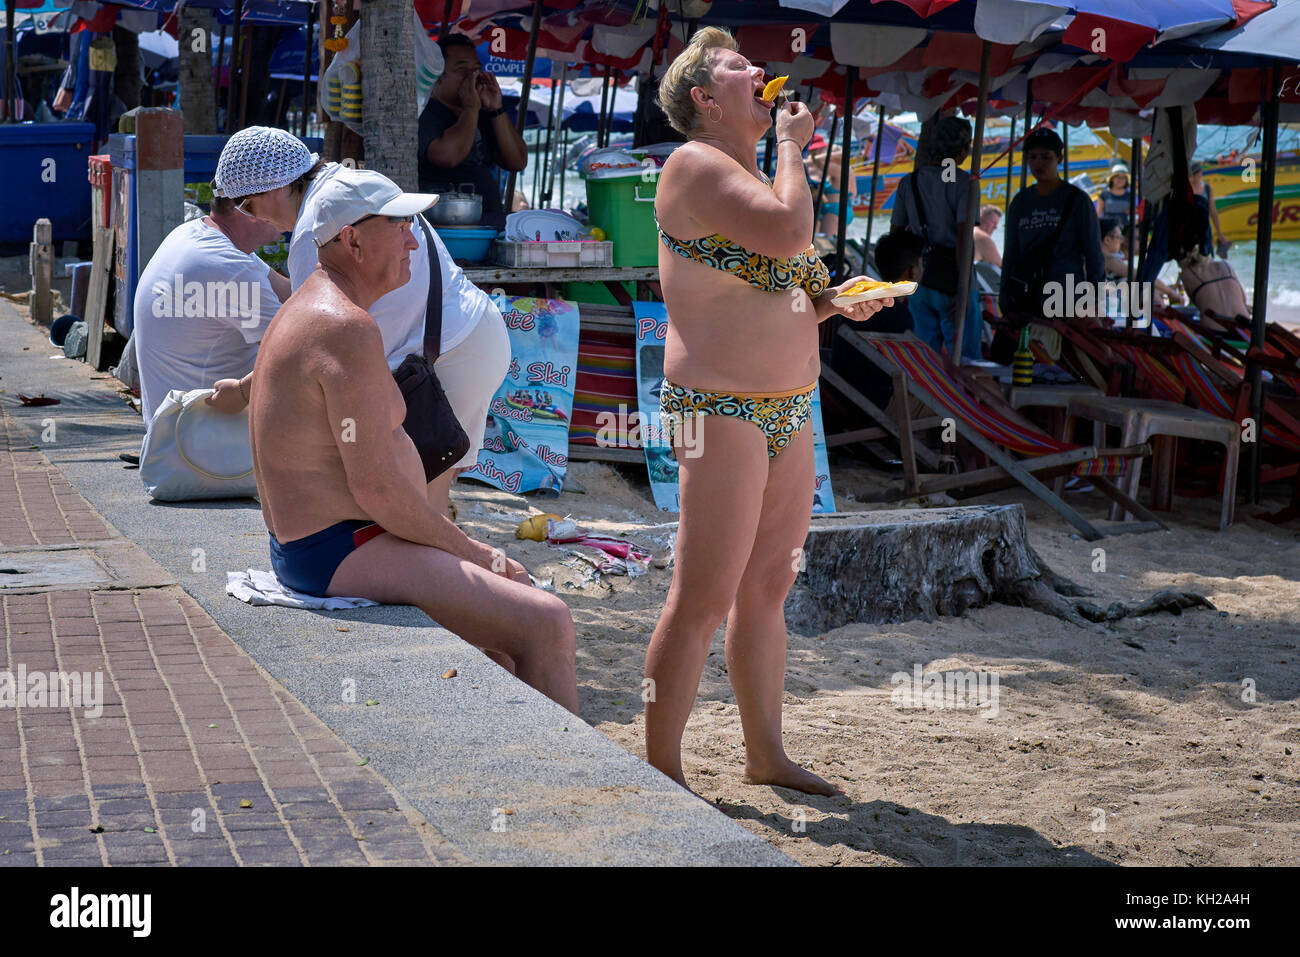 Mature woman in a bikini. Couple in swimwear at the beach. - Stock Image